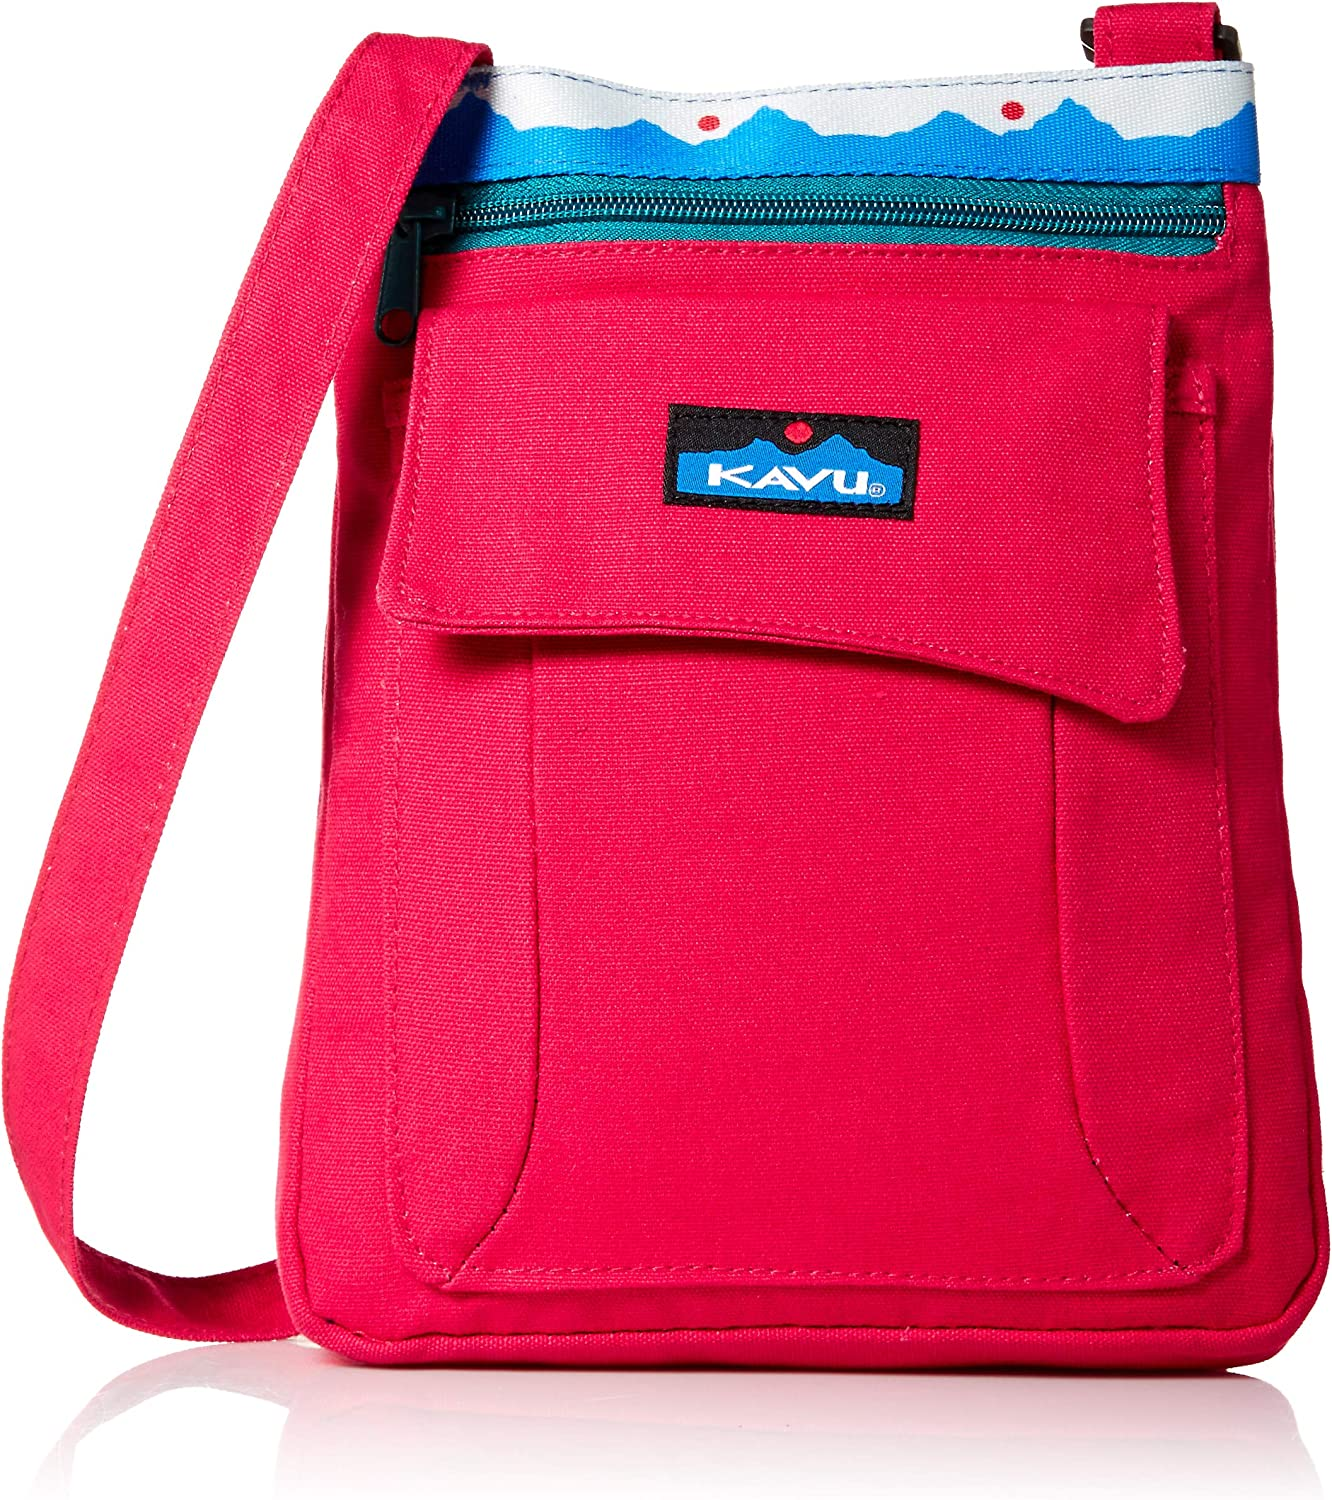 KAVU Keeper Semi Padded Sling Cotton Canvas Crossbody Bag